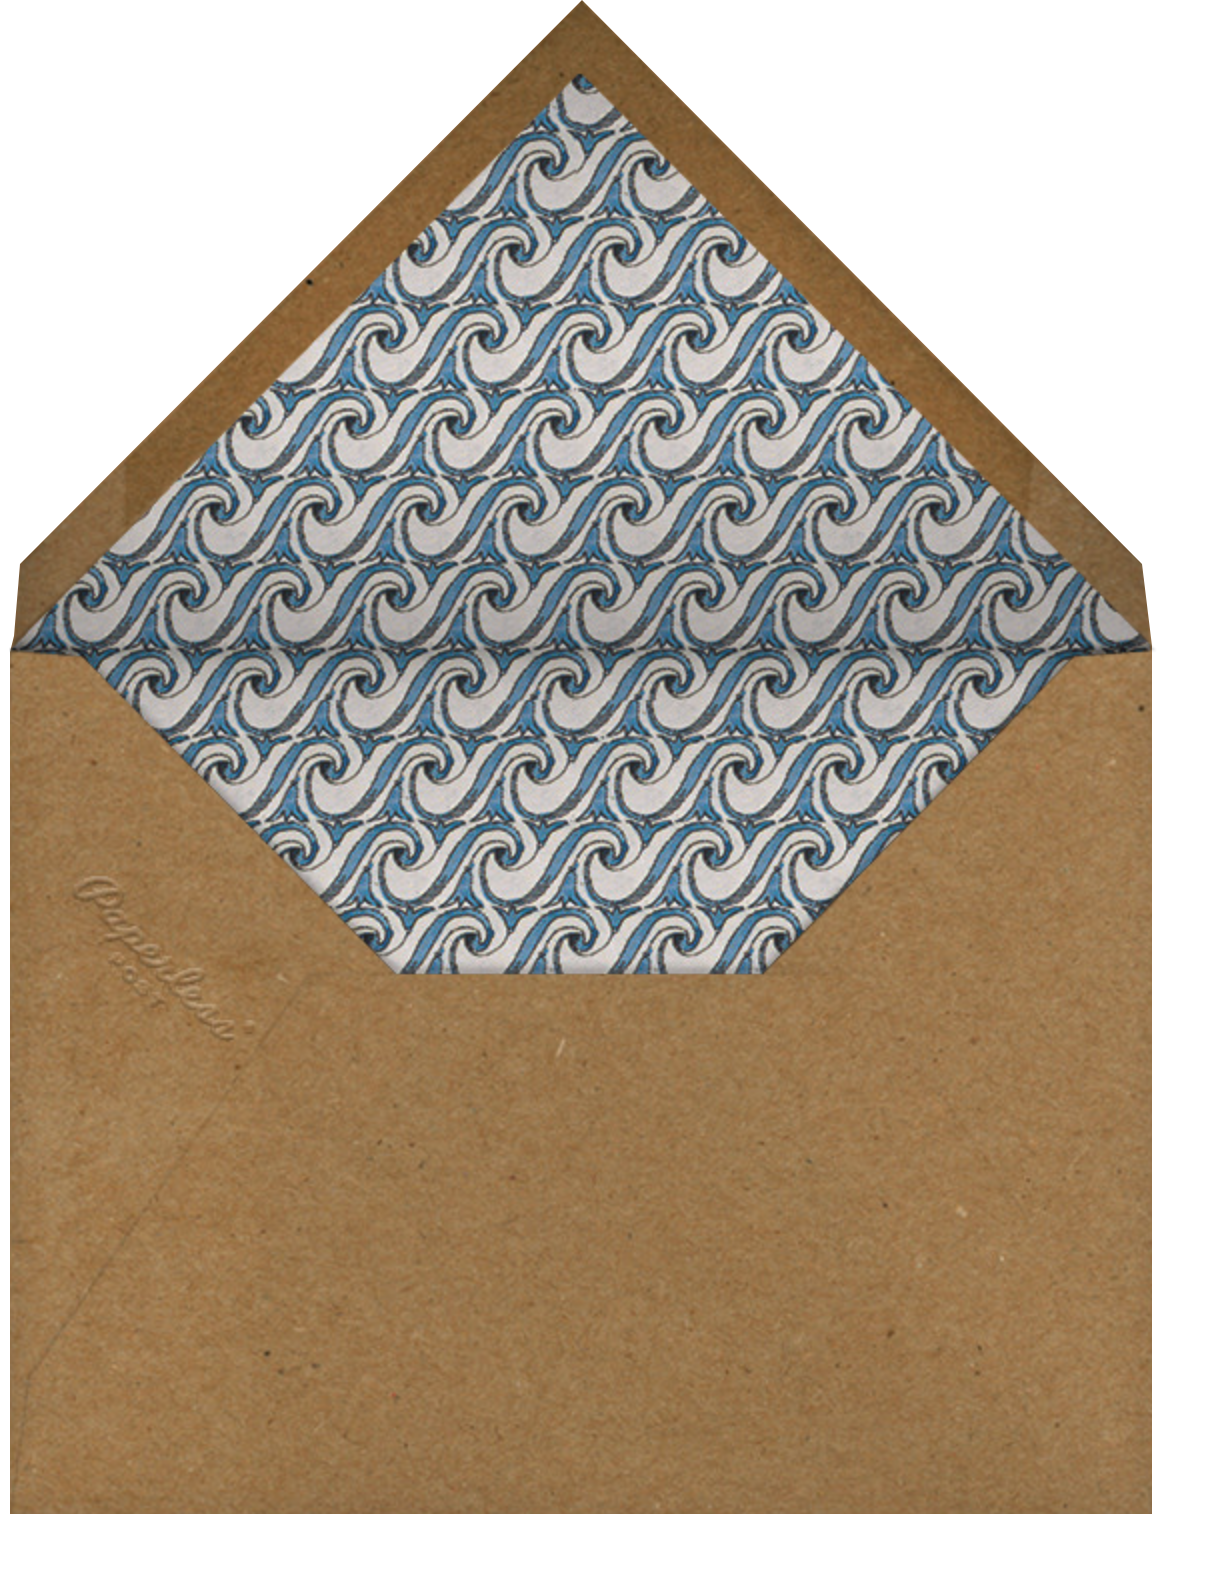 Rope and Waves (Square) - John Derian - Beach party - envelope back